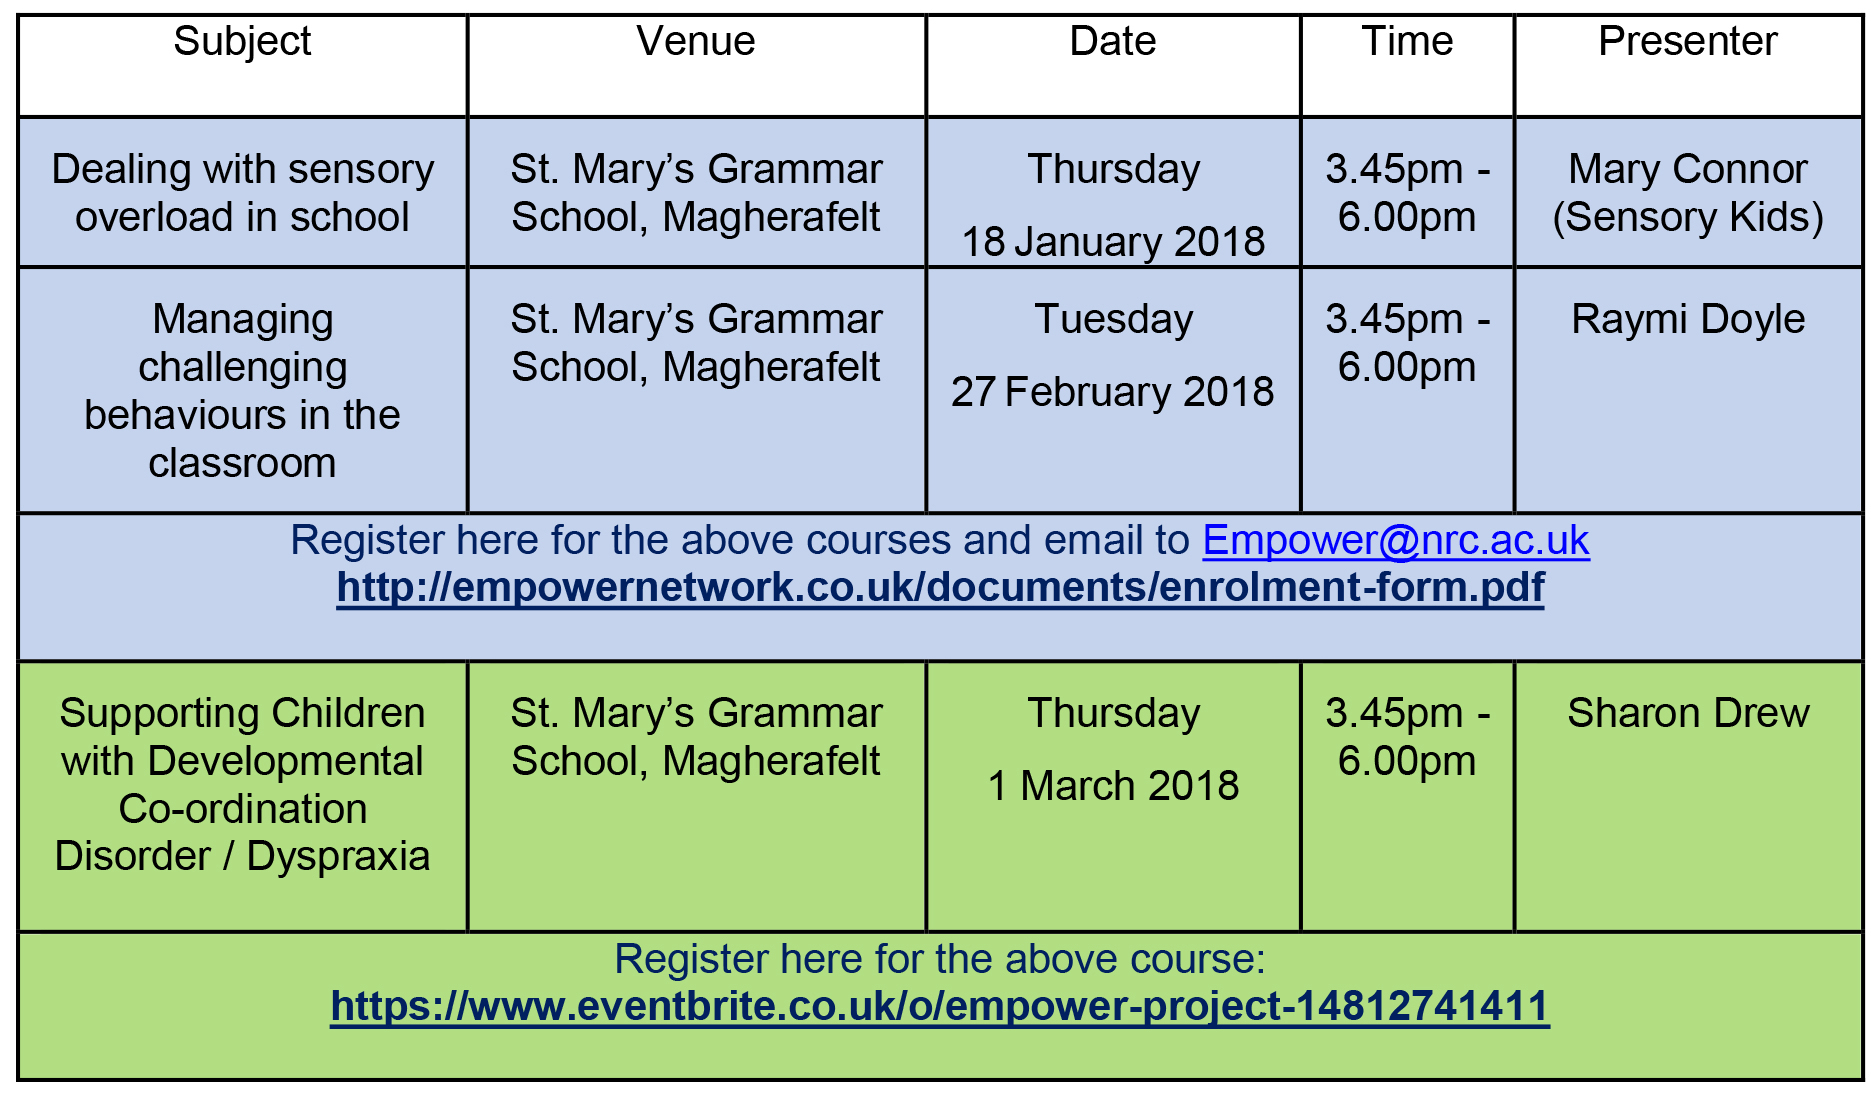 Empower Project Training Sessions at St. Mary's